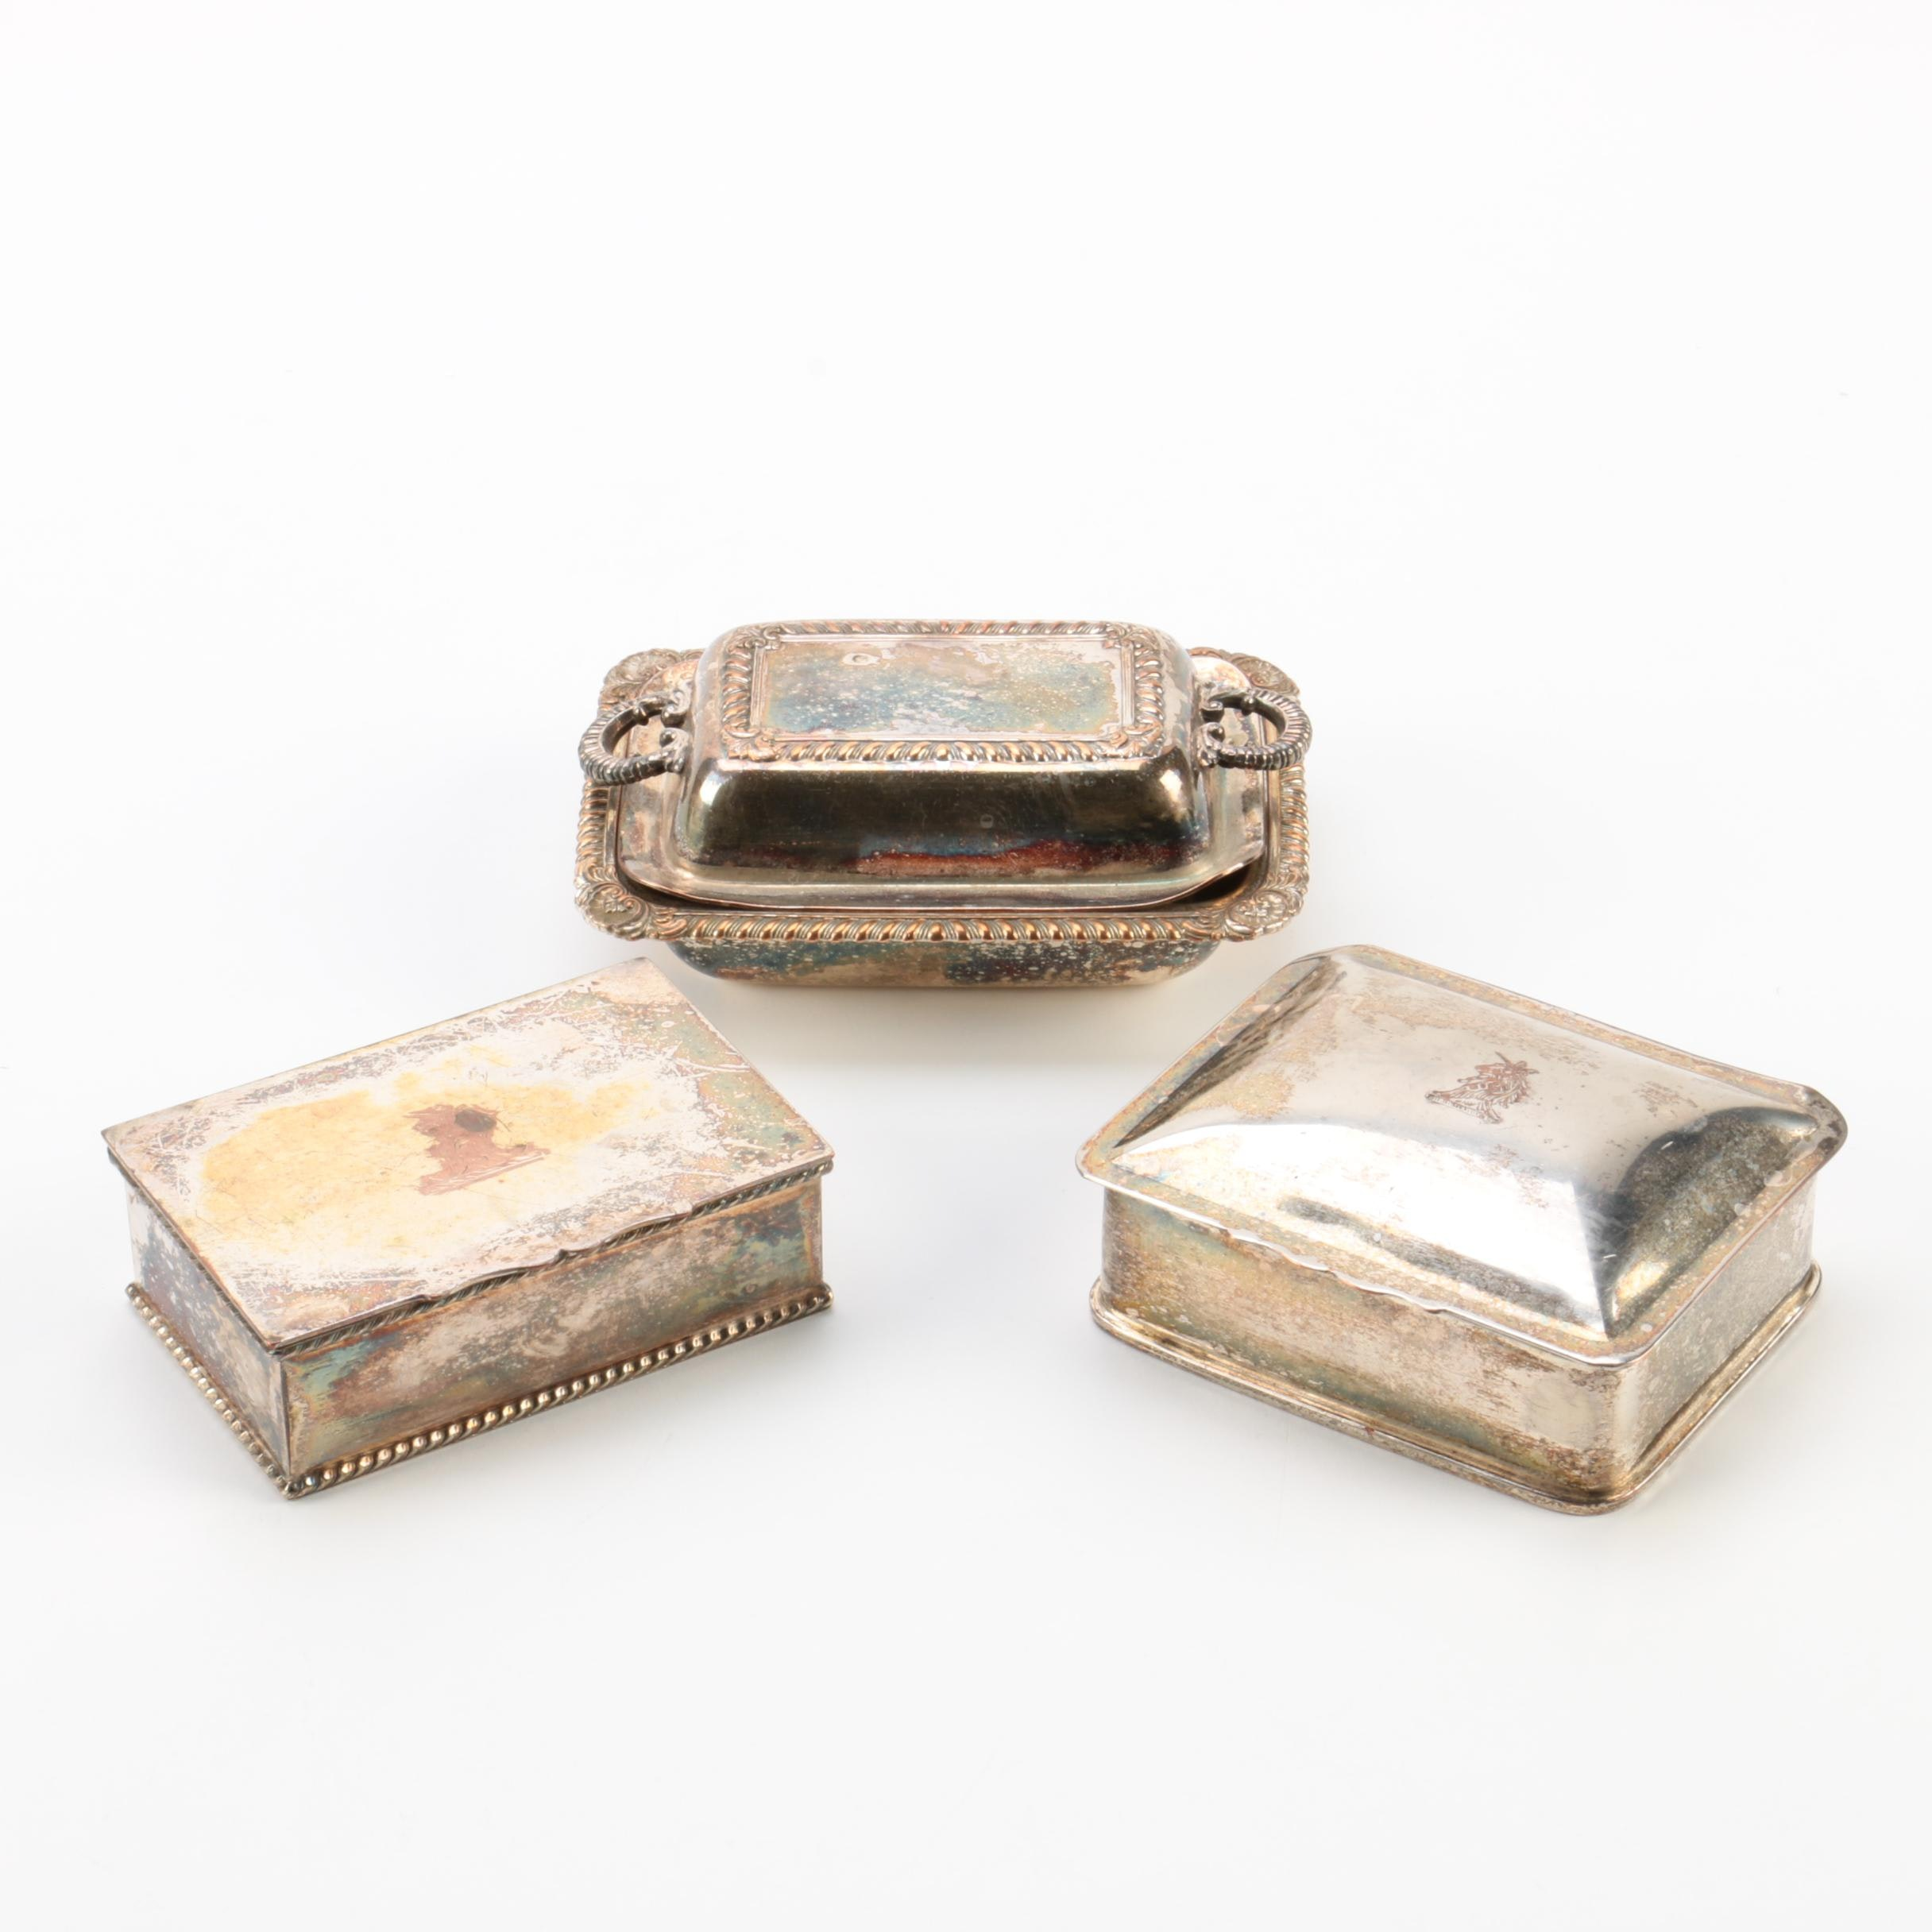 E.G. Webster & Son Silver Plate Small Covered Dishes with Trinket Boxes